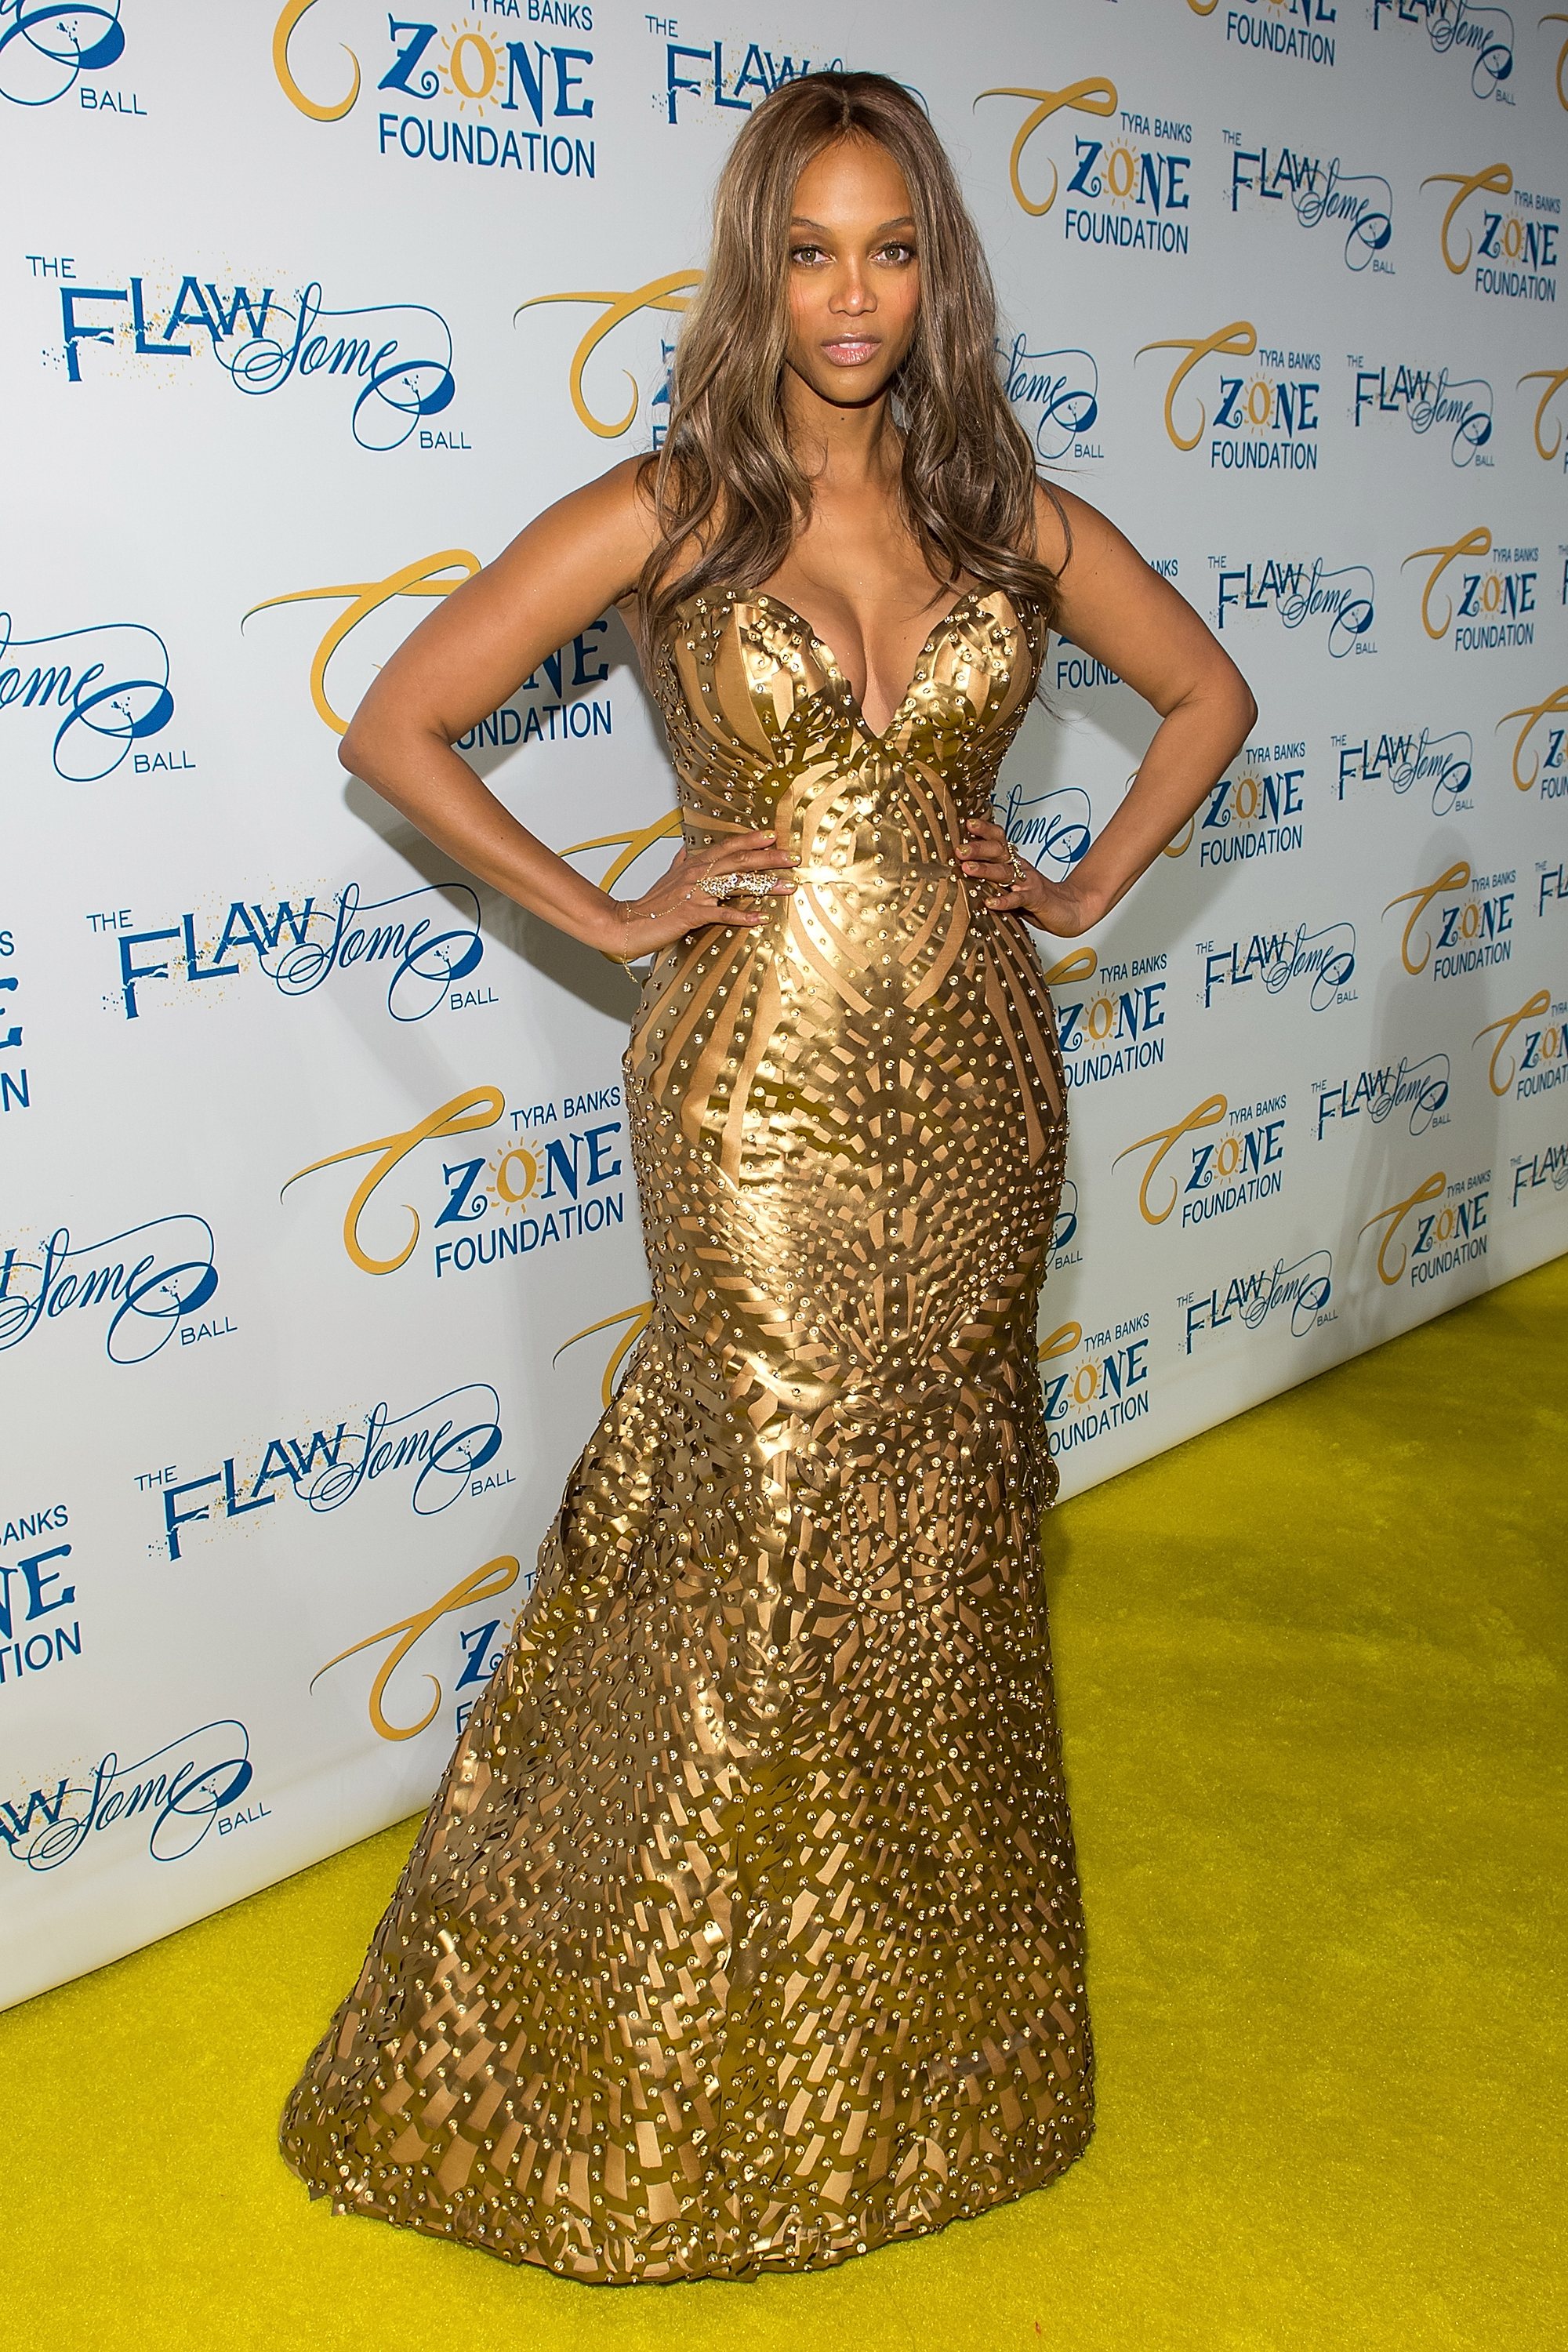 Model Tyra Banks attends Tyra Banks' Flawsome Ball 2014 at Cipriani Wall Street on May 6, 2014 in New York City.